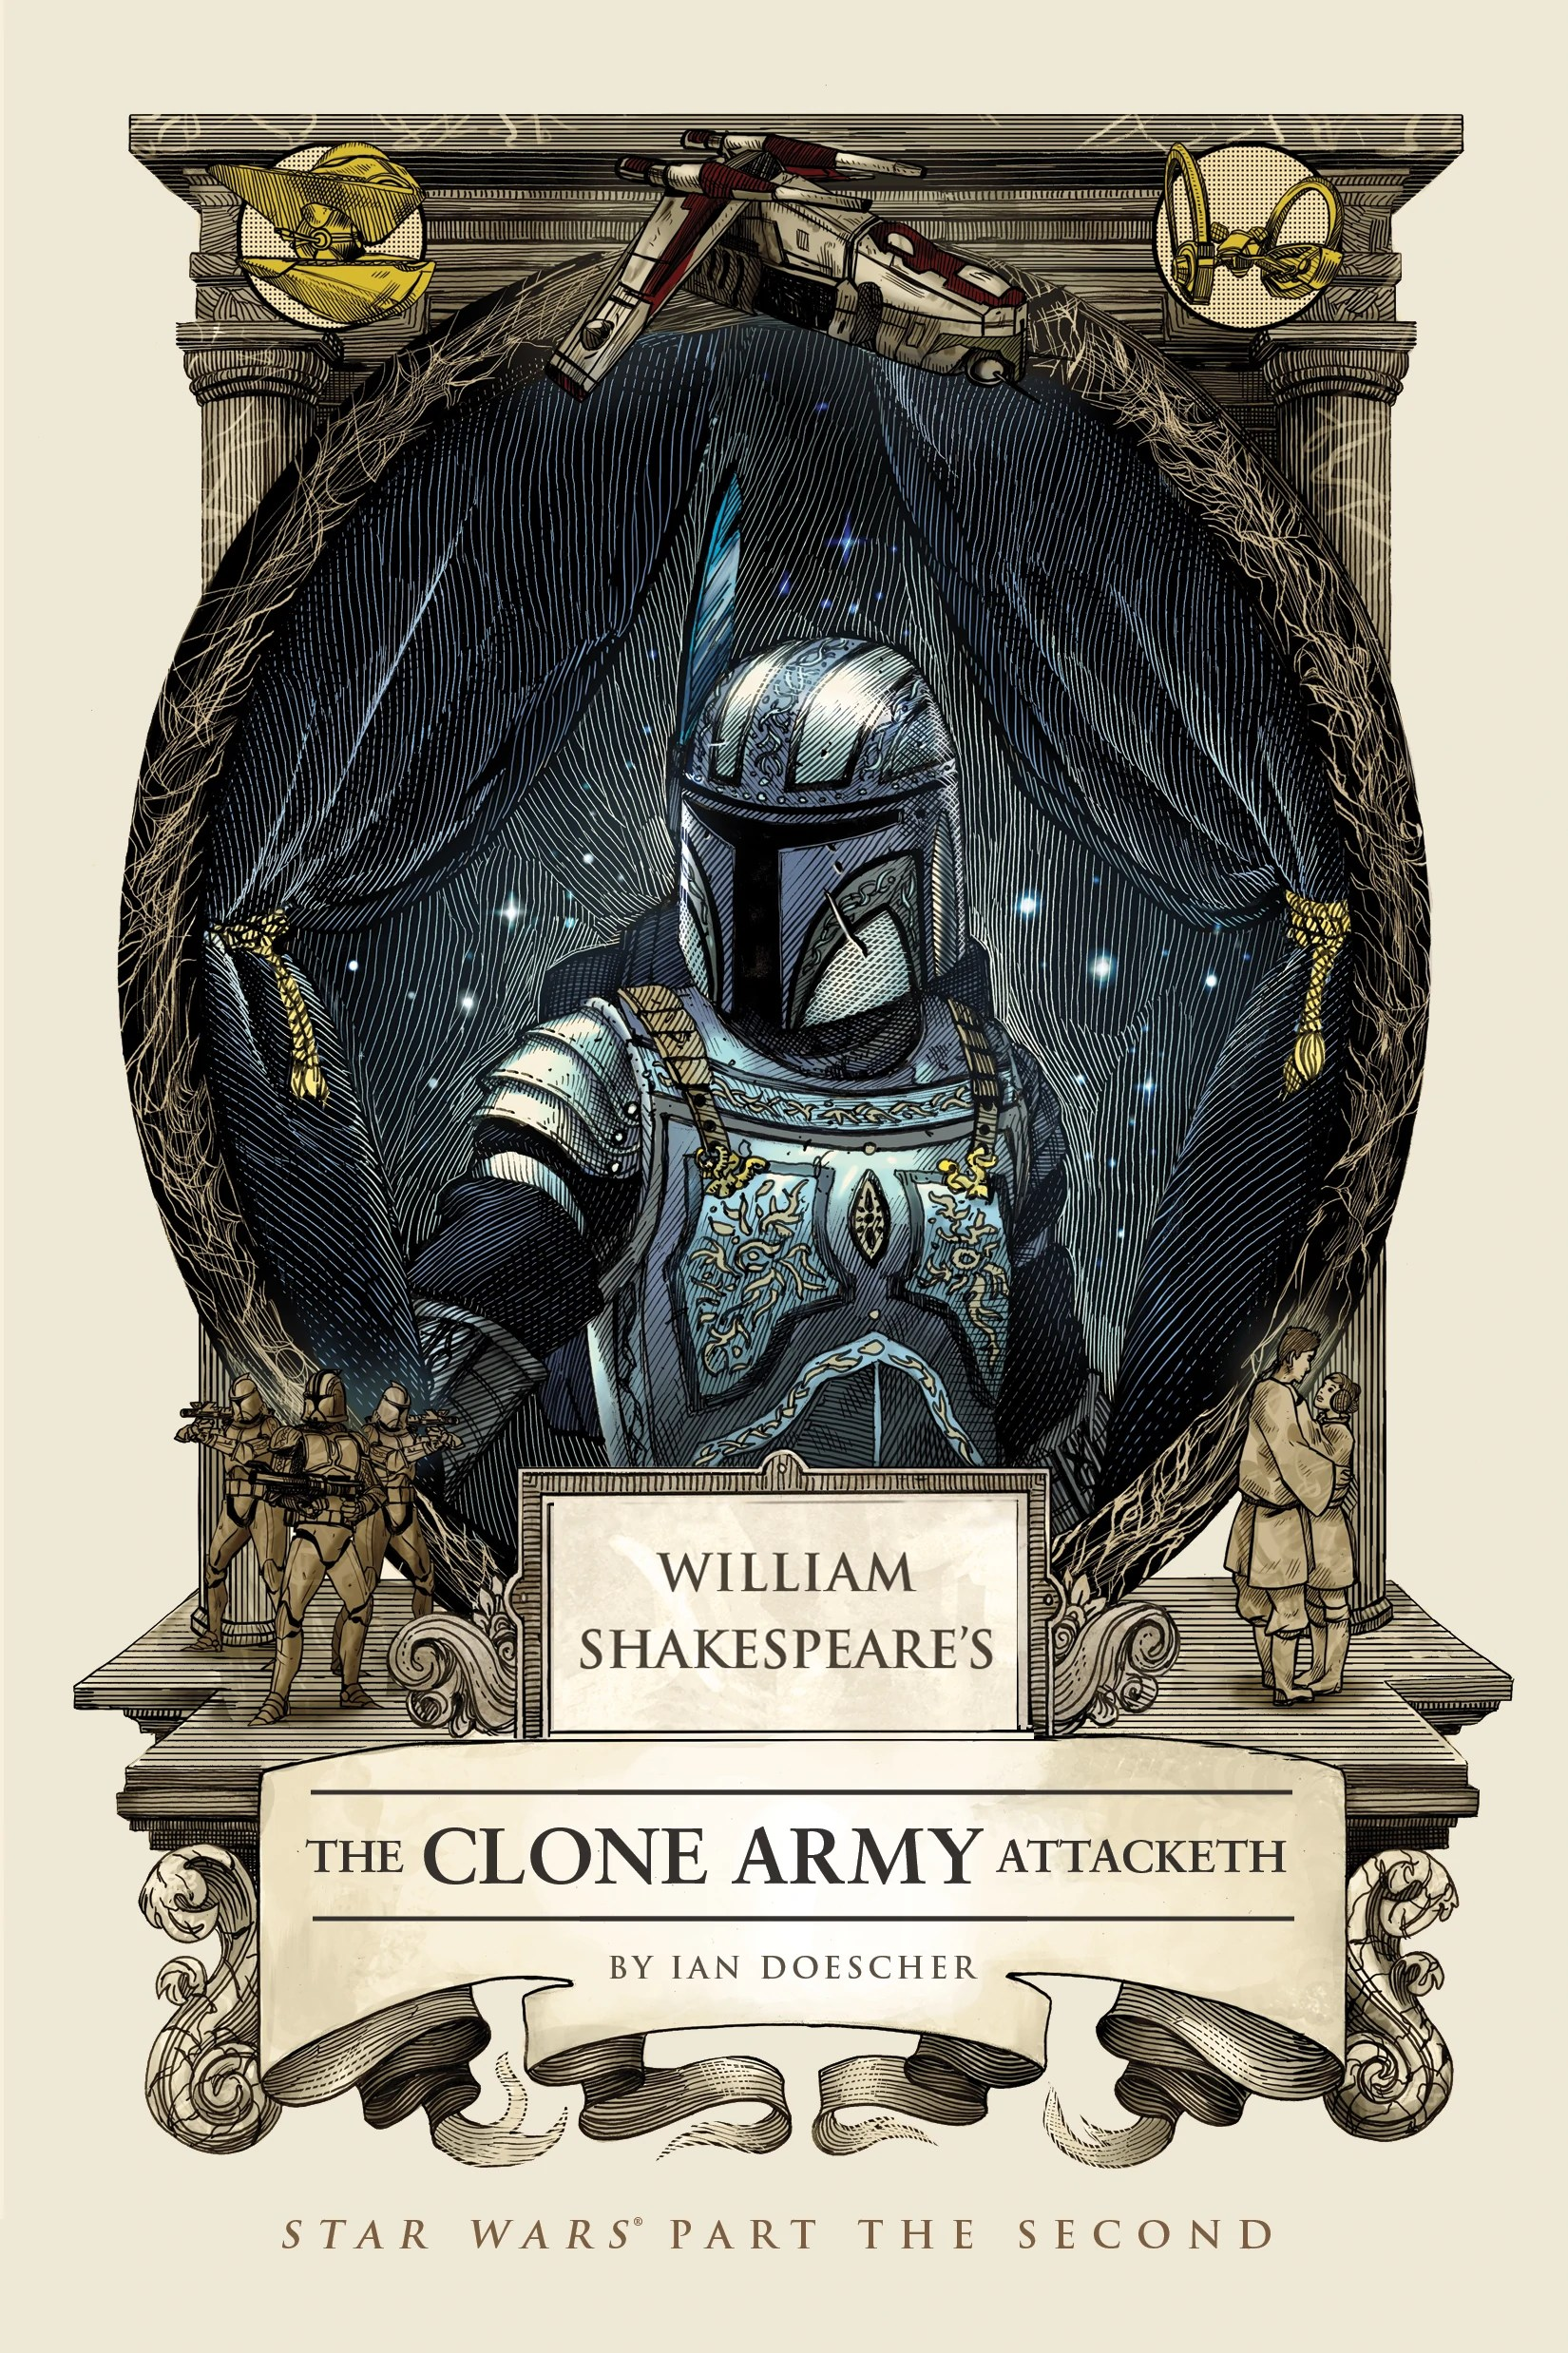 William Shakespeare's The Clone Army Attacketh, by Ian Doescher, on amazon.com